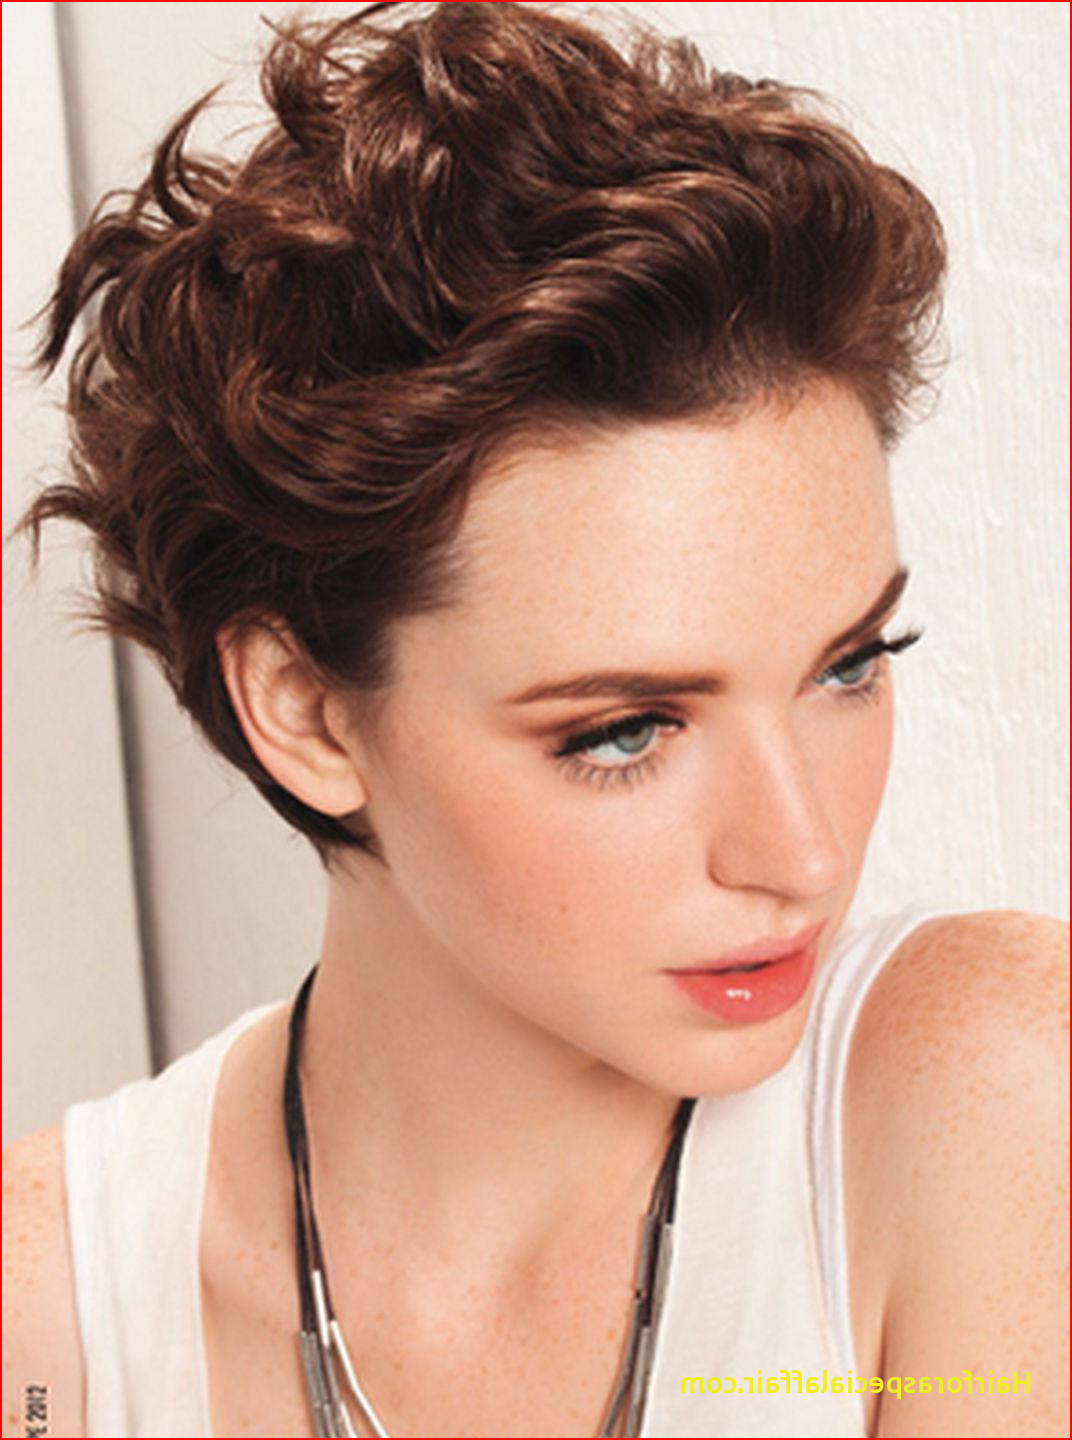 Short Haircuts For Women With Thick Wavy Hair Cute Short Haircuts With Short Haircut For Thick Wavy Hair (View 9 of 25)